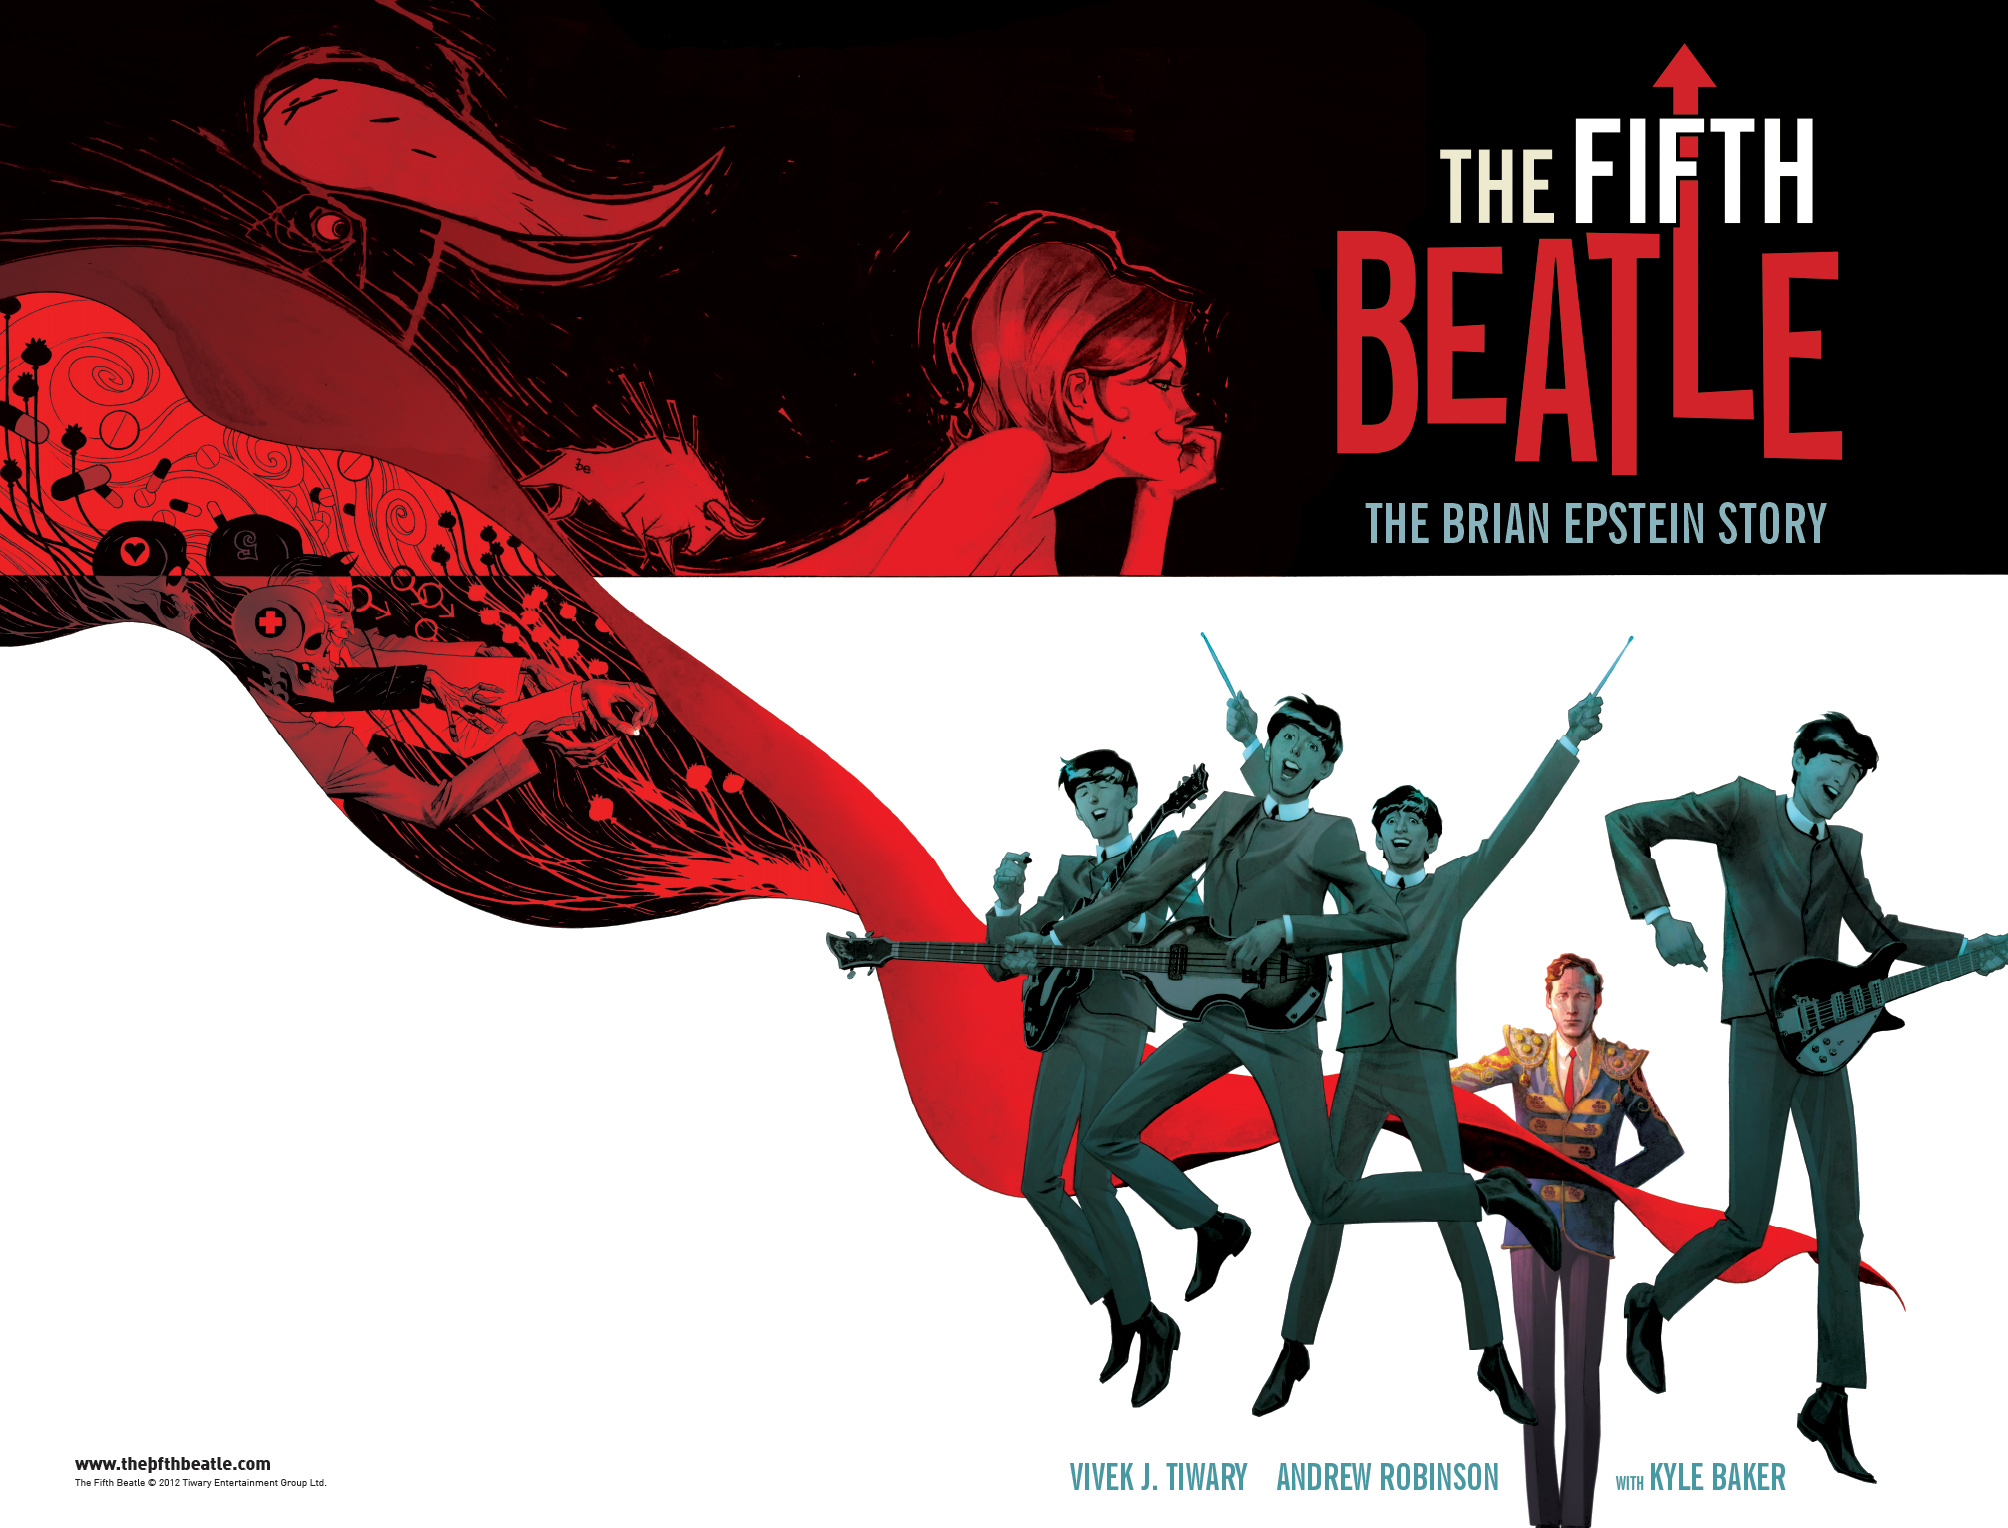 The-Fifth-Beatle-�-2012-Tiwary-Entertainment-Group-Ltd..jpg